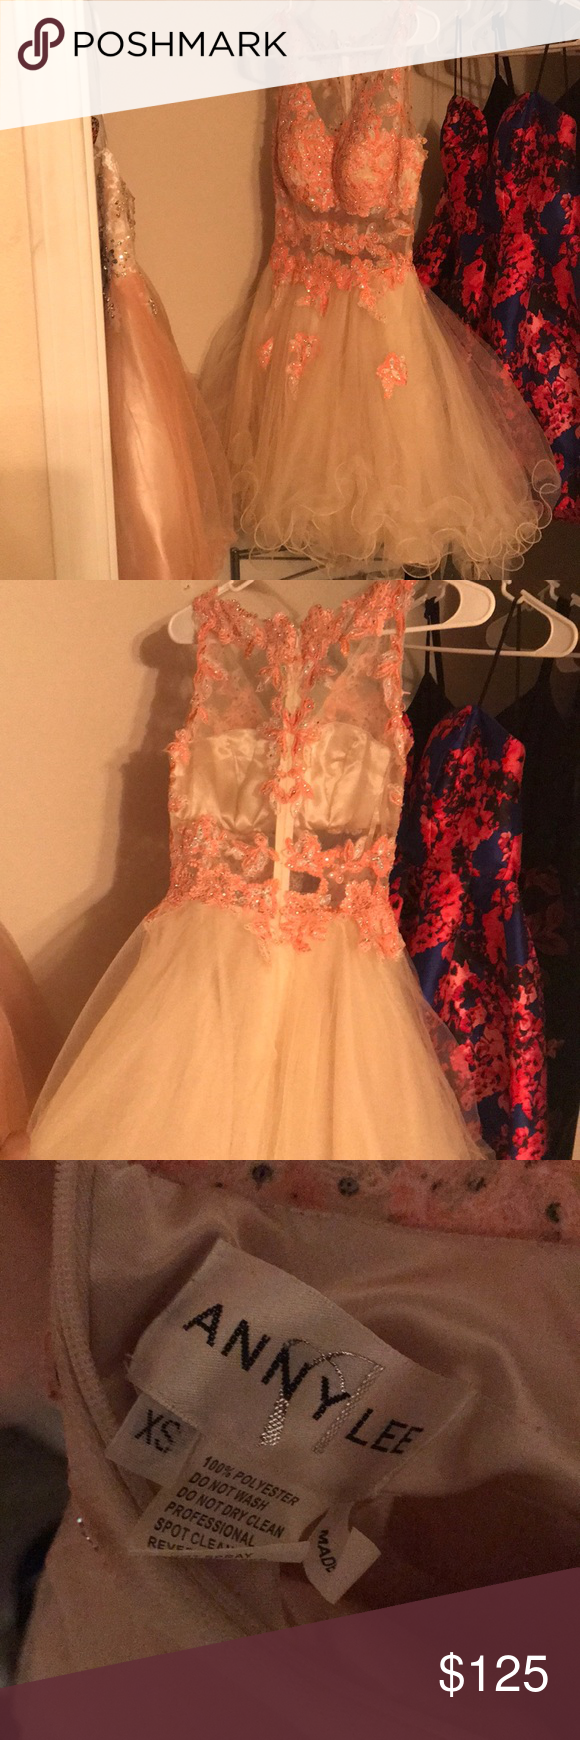 Homecomingprom dress coral nude and pink color xs my posh picks